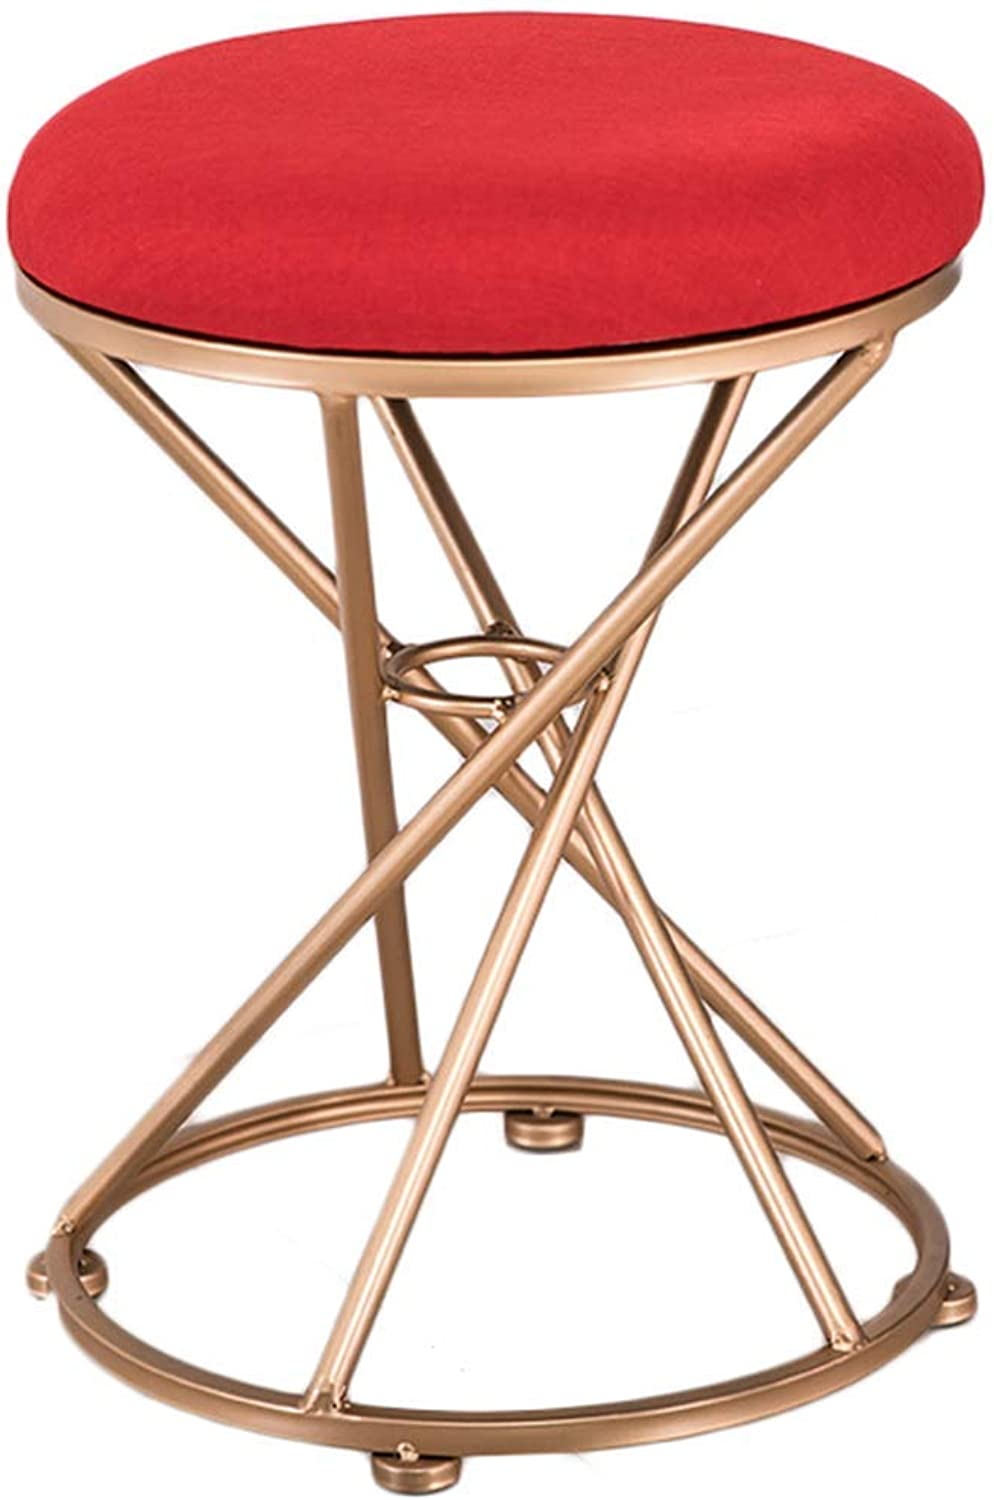 D-Z Chair Stool Dressing Stool Iron Small round Stool Fabric Stool Sofa Change shoes Stool, Stool 2, a